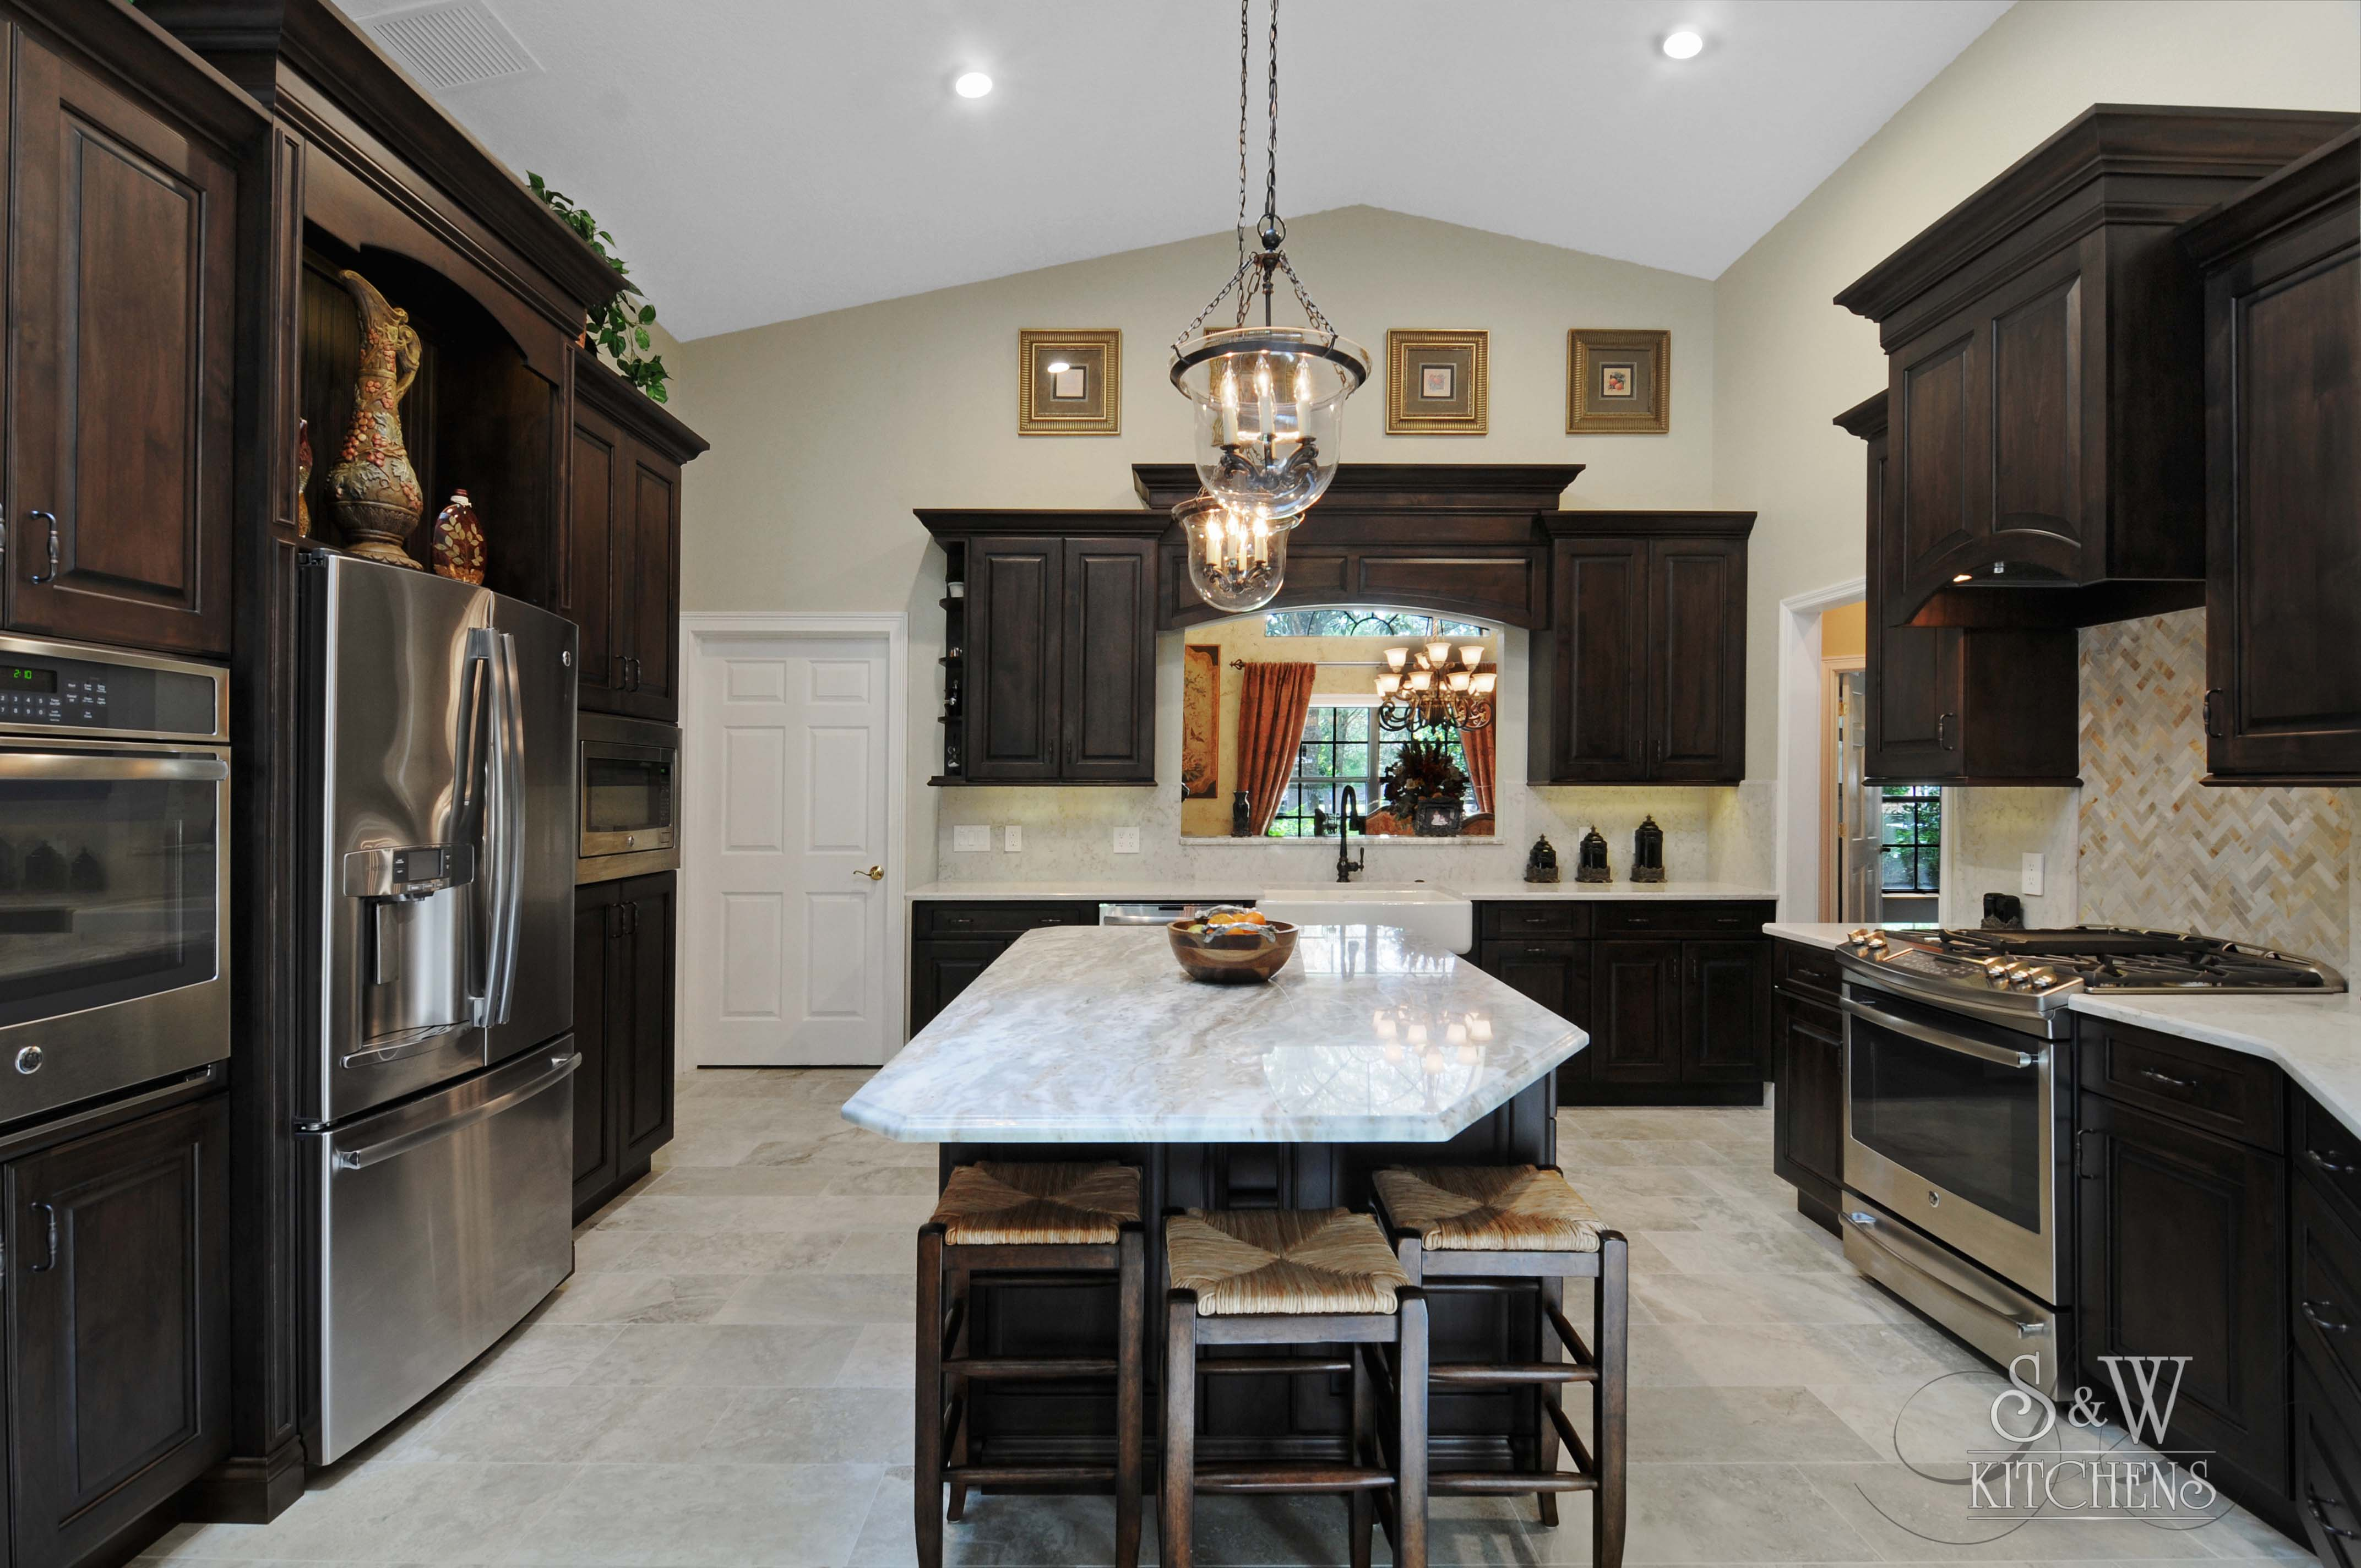 Greenfield Kitchen and Bath Cabinets